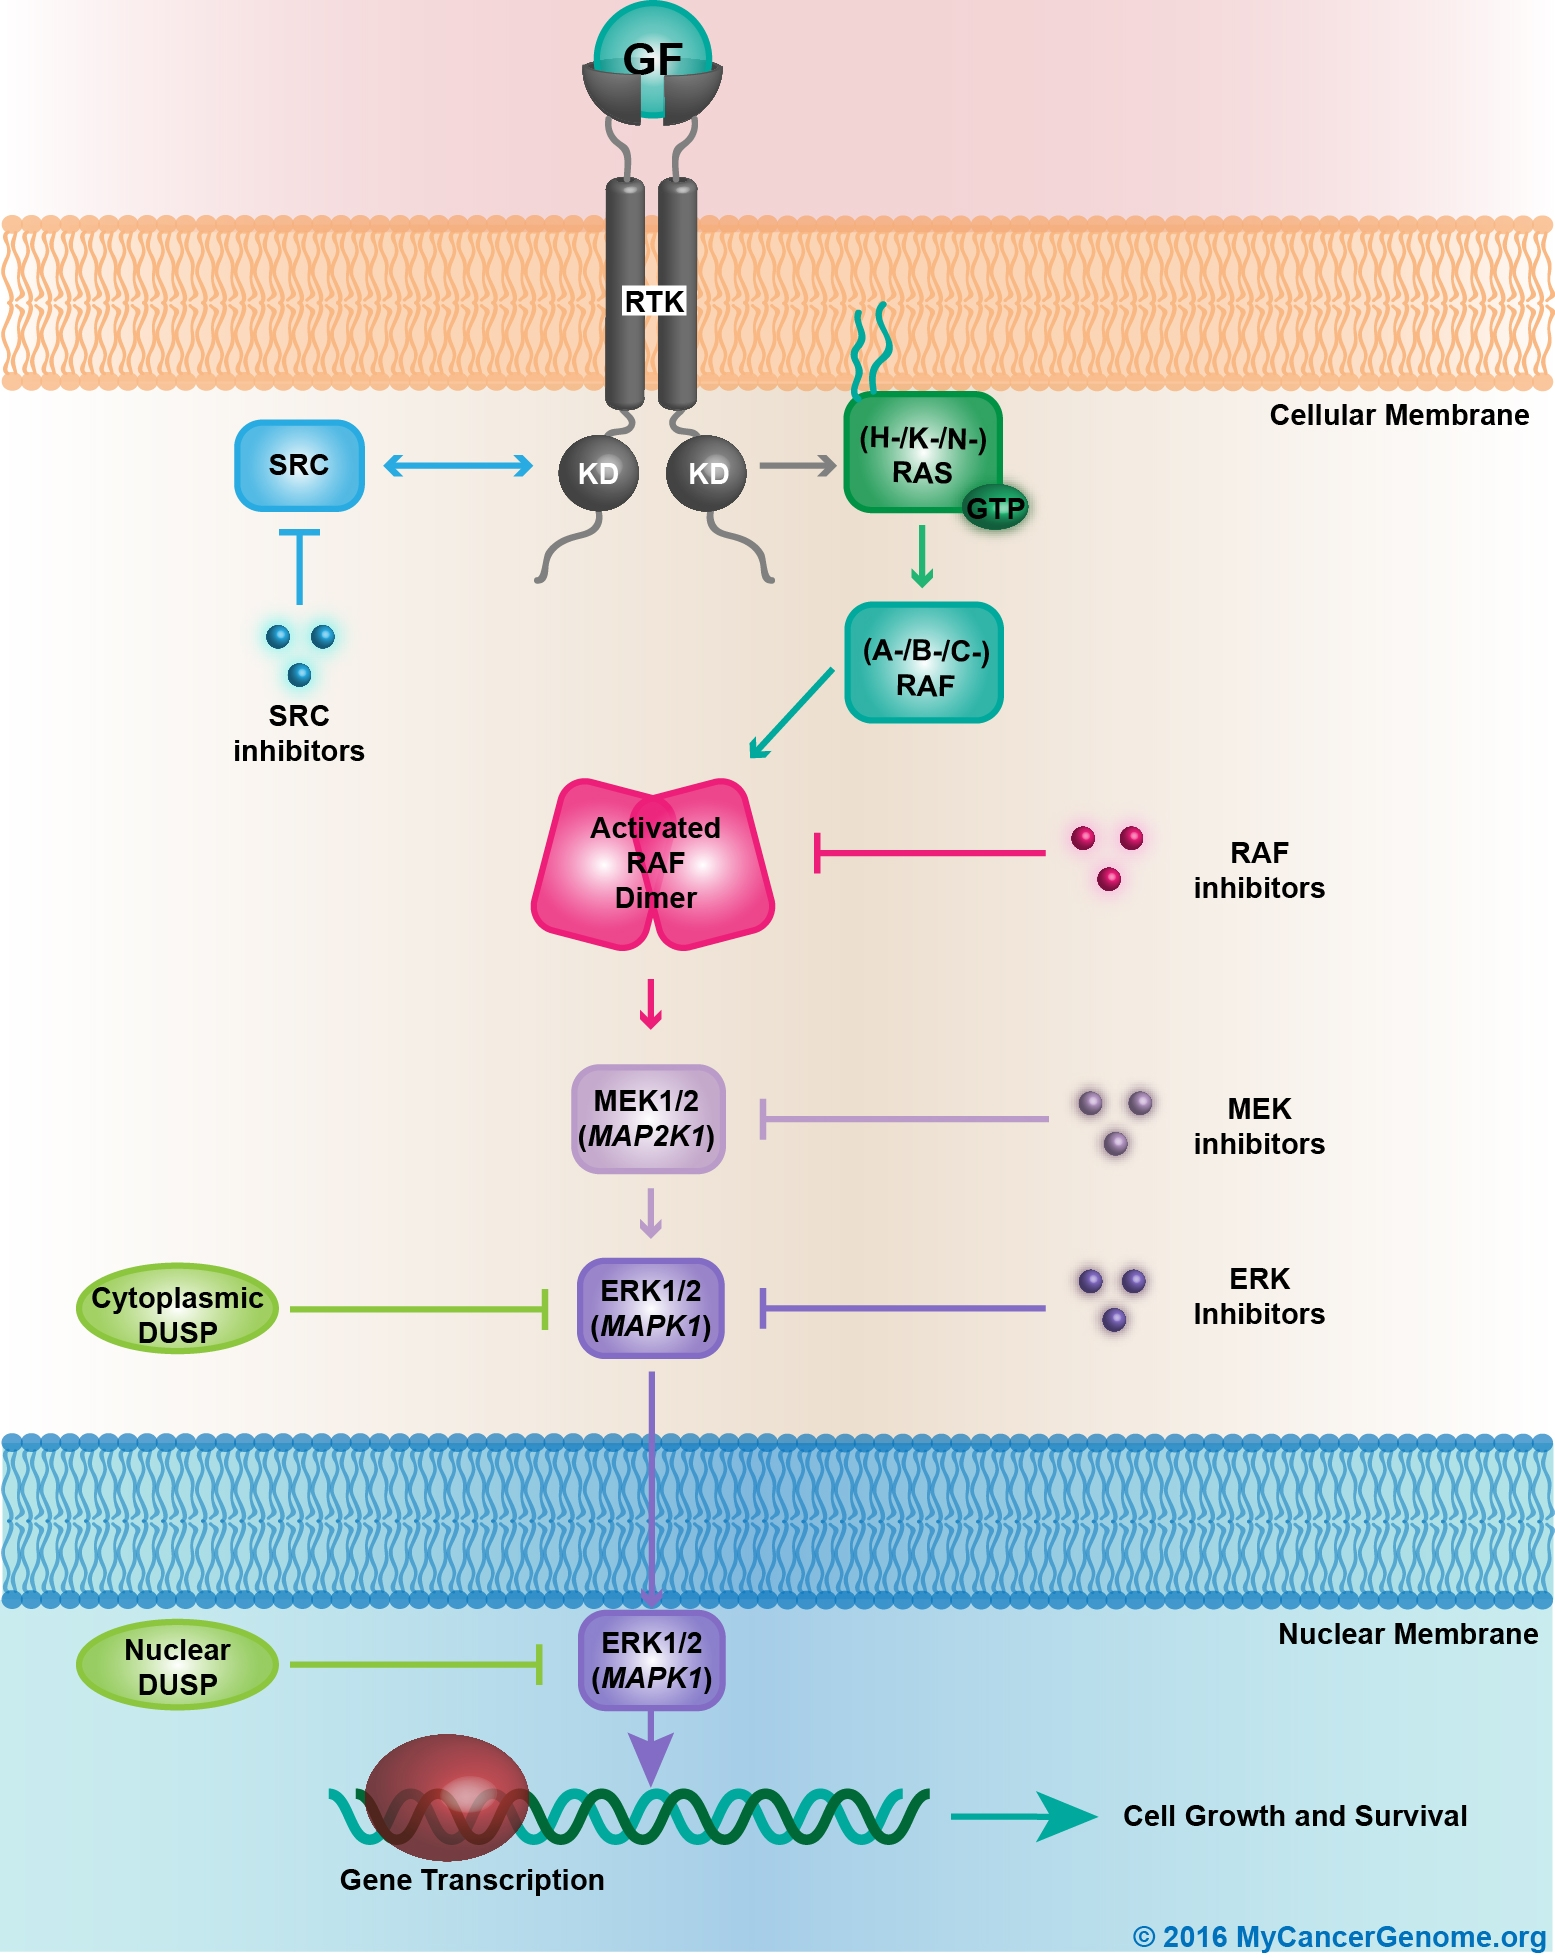 MAP kinase signaling - My Cancer Genome on cyclic adenosine monophosphate, mapk/erk pathway, apoptosis cascade, c-jun n-terminal kinases, jak-stat signaling pathway, protein kinase, adenylate cyclase, pi3k/akt/mtor pathway, protein kinase c, wnt signaling pathway, signal transduction, protein kinase cascade, tyrosine kinase, cyclin-dependent kinase, notch signaling pathway, amyloid cascade, signal transduction pathway cascade, receptor tyrosine kinase, tgf beta signaling pathway, caspase cascade,